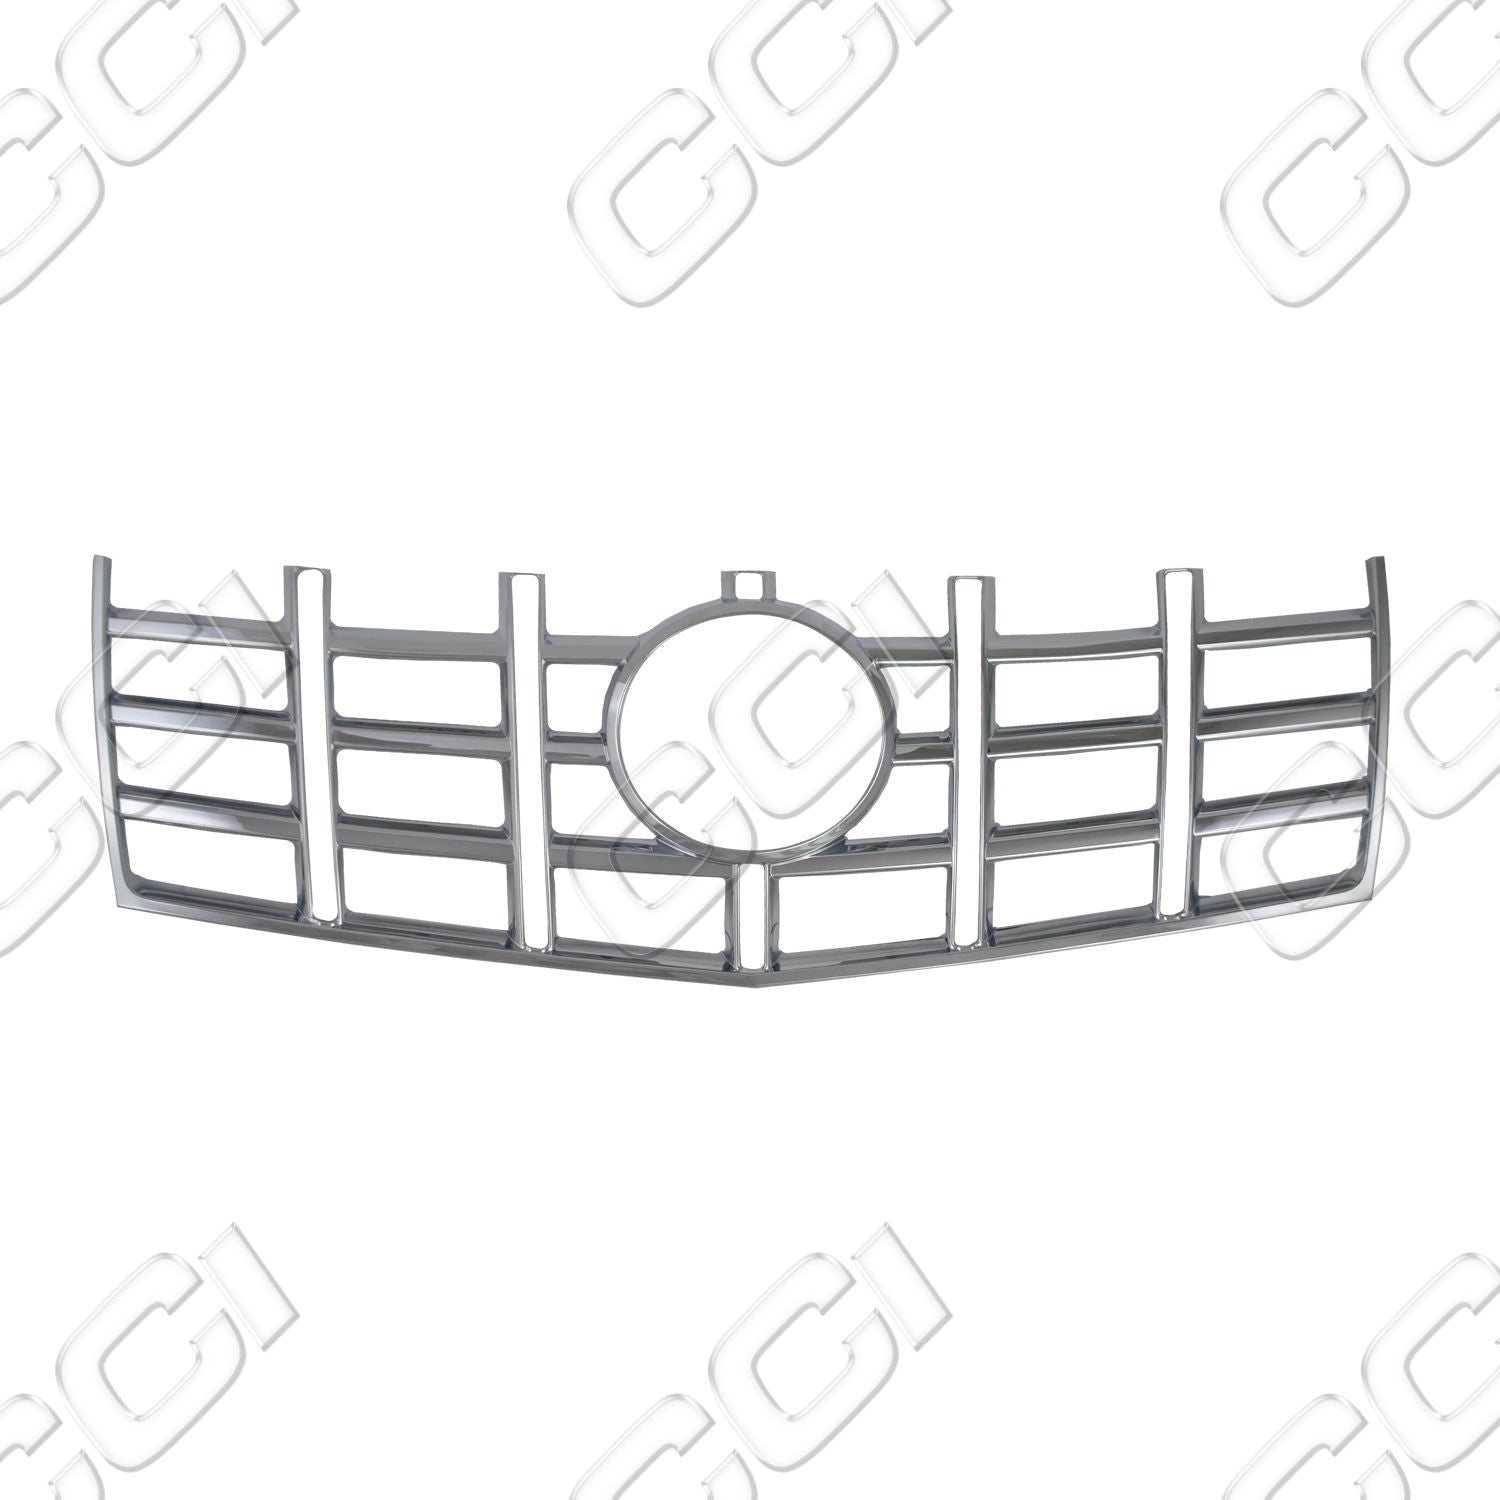 IWCGI-111 Cadillac CTS 2012-13 Sedan | 2012 2013 2014 Coupe ABS Chrome Snap-On Grille Grill Overlay by CCI